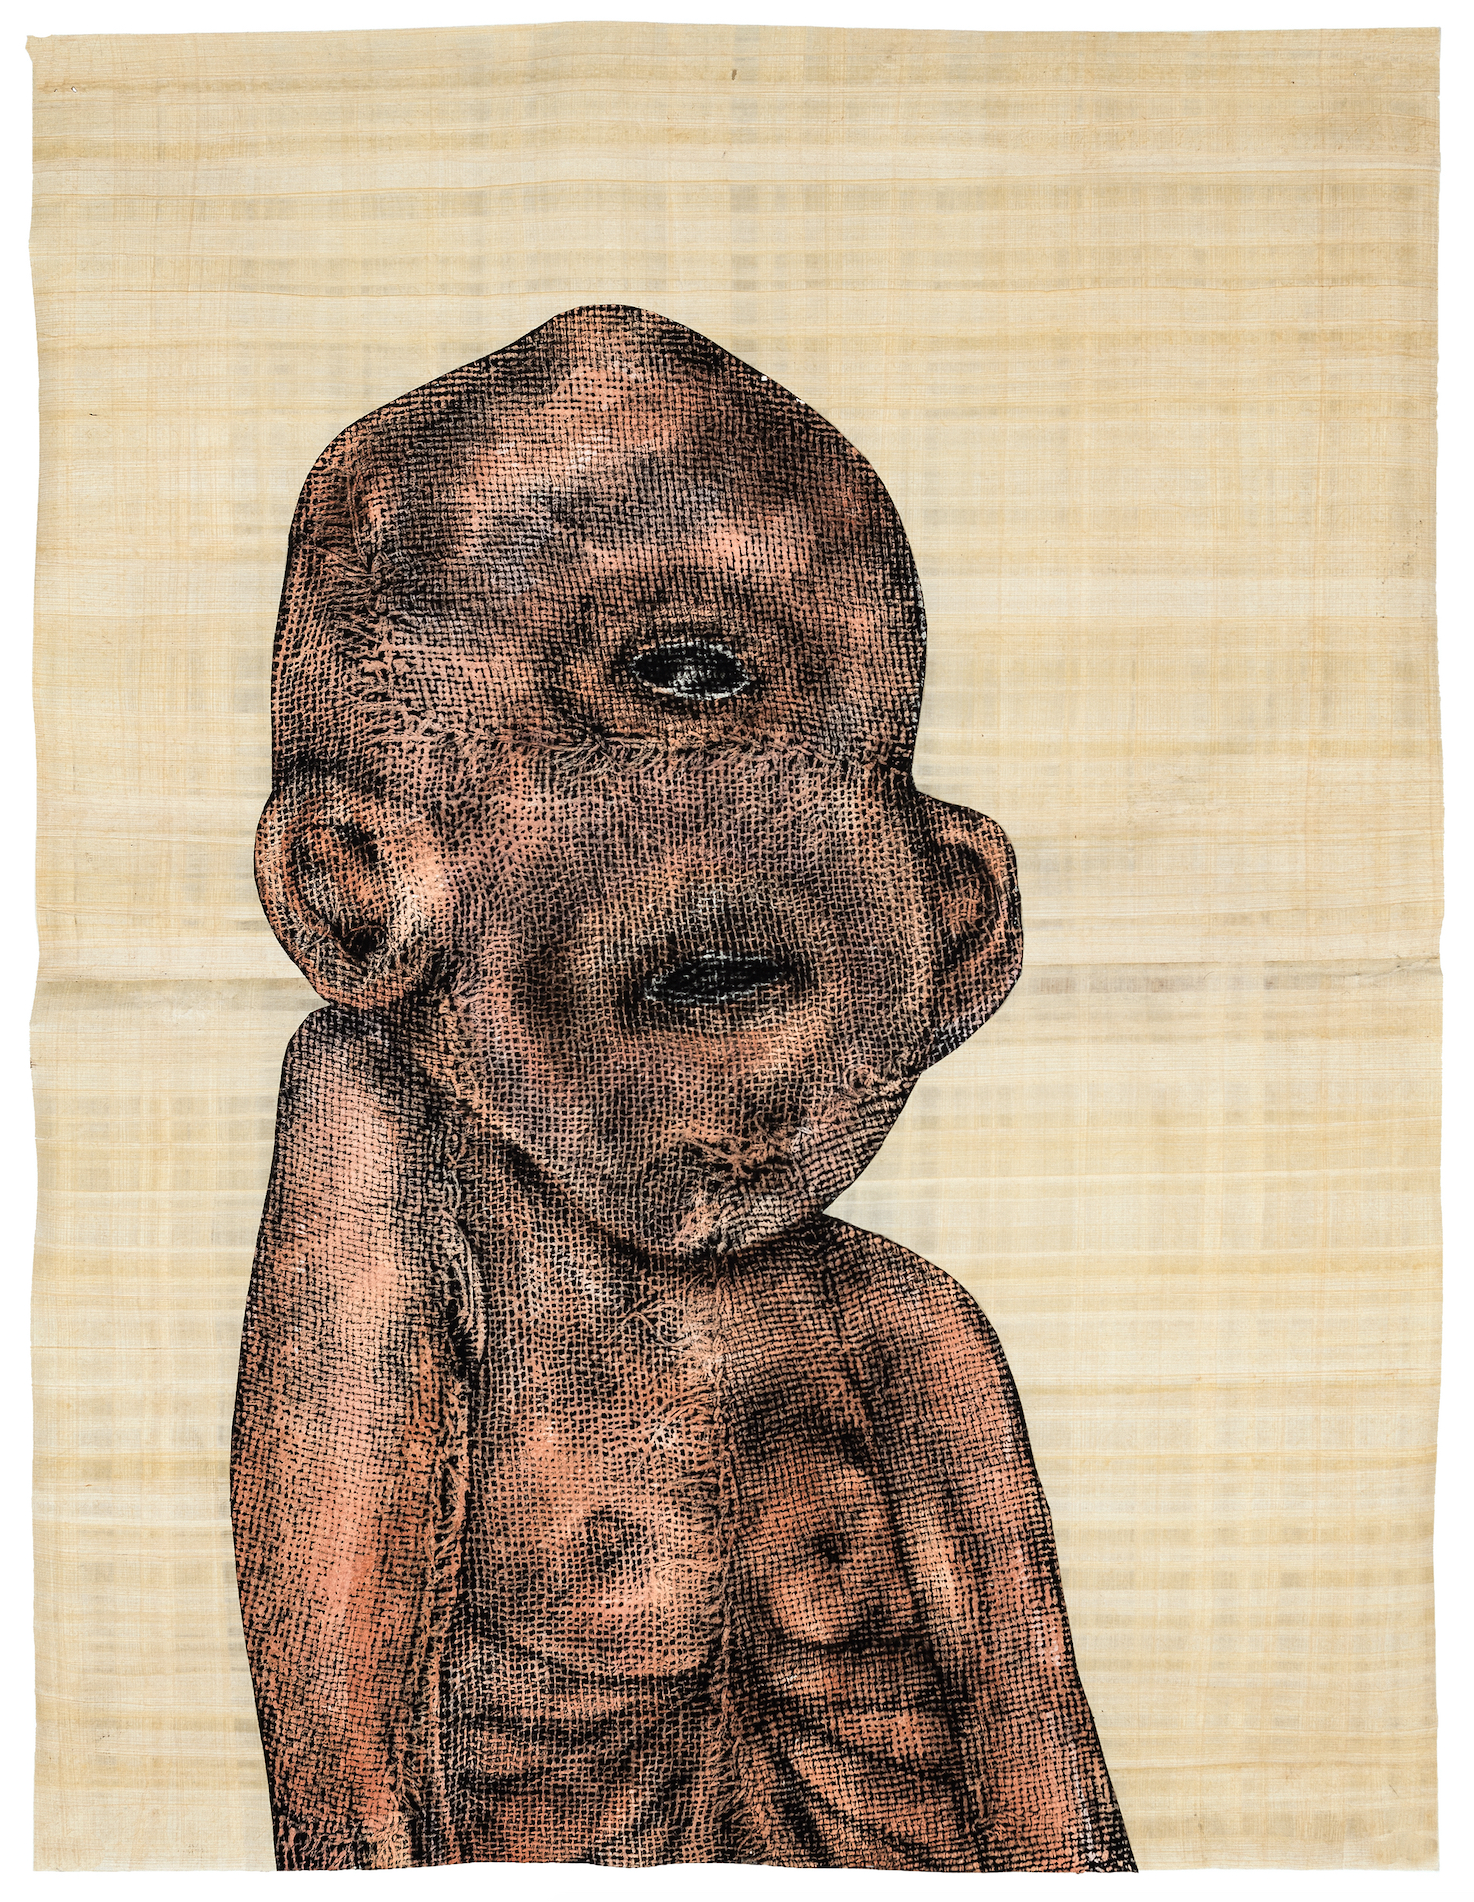 Carlos Fragoso  (B. 1954)  Baby Cyclops , 2016 Acrylic, charcoal and collage on paper and papyrus 28 x 21 inches